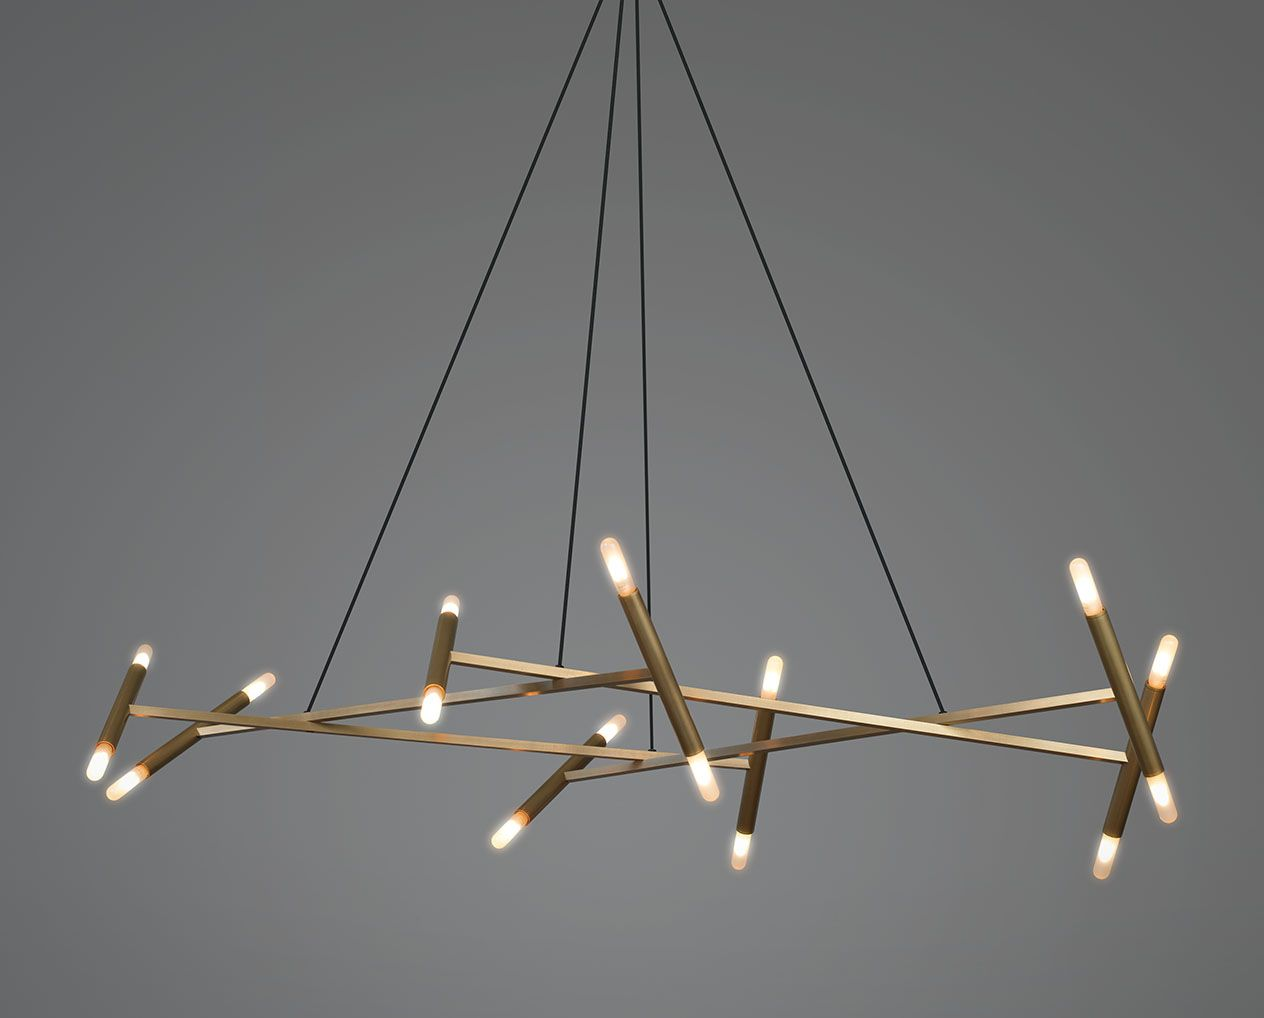 Jonathan browning studios lightinglamps pinterest browning le diamant chandelier is made from heavy wall brass tubese four square tubes terminate at each end at a round tubenbsp arubaitofo Choice Image